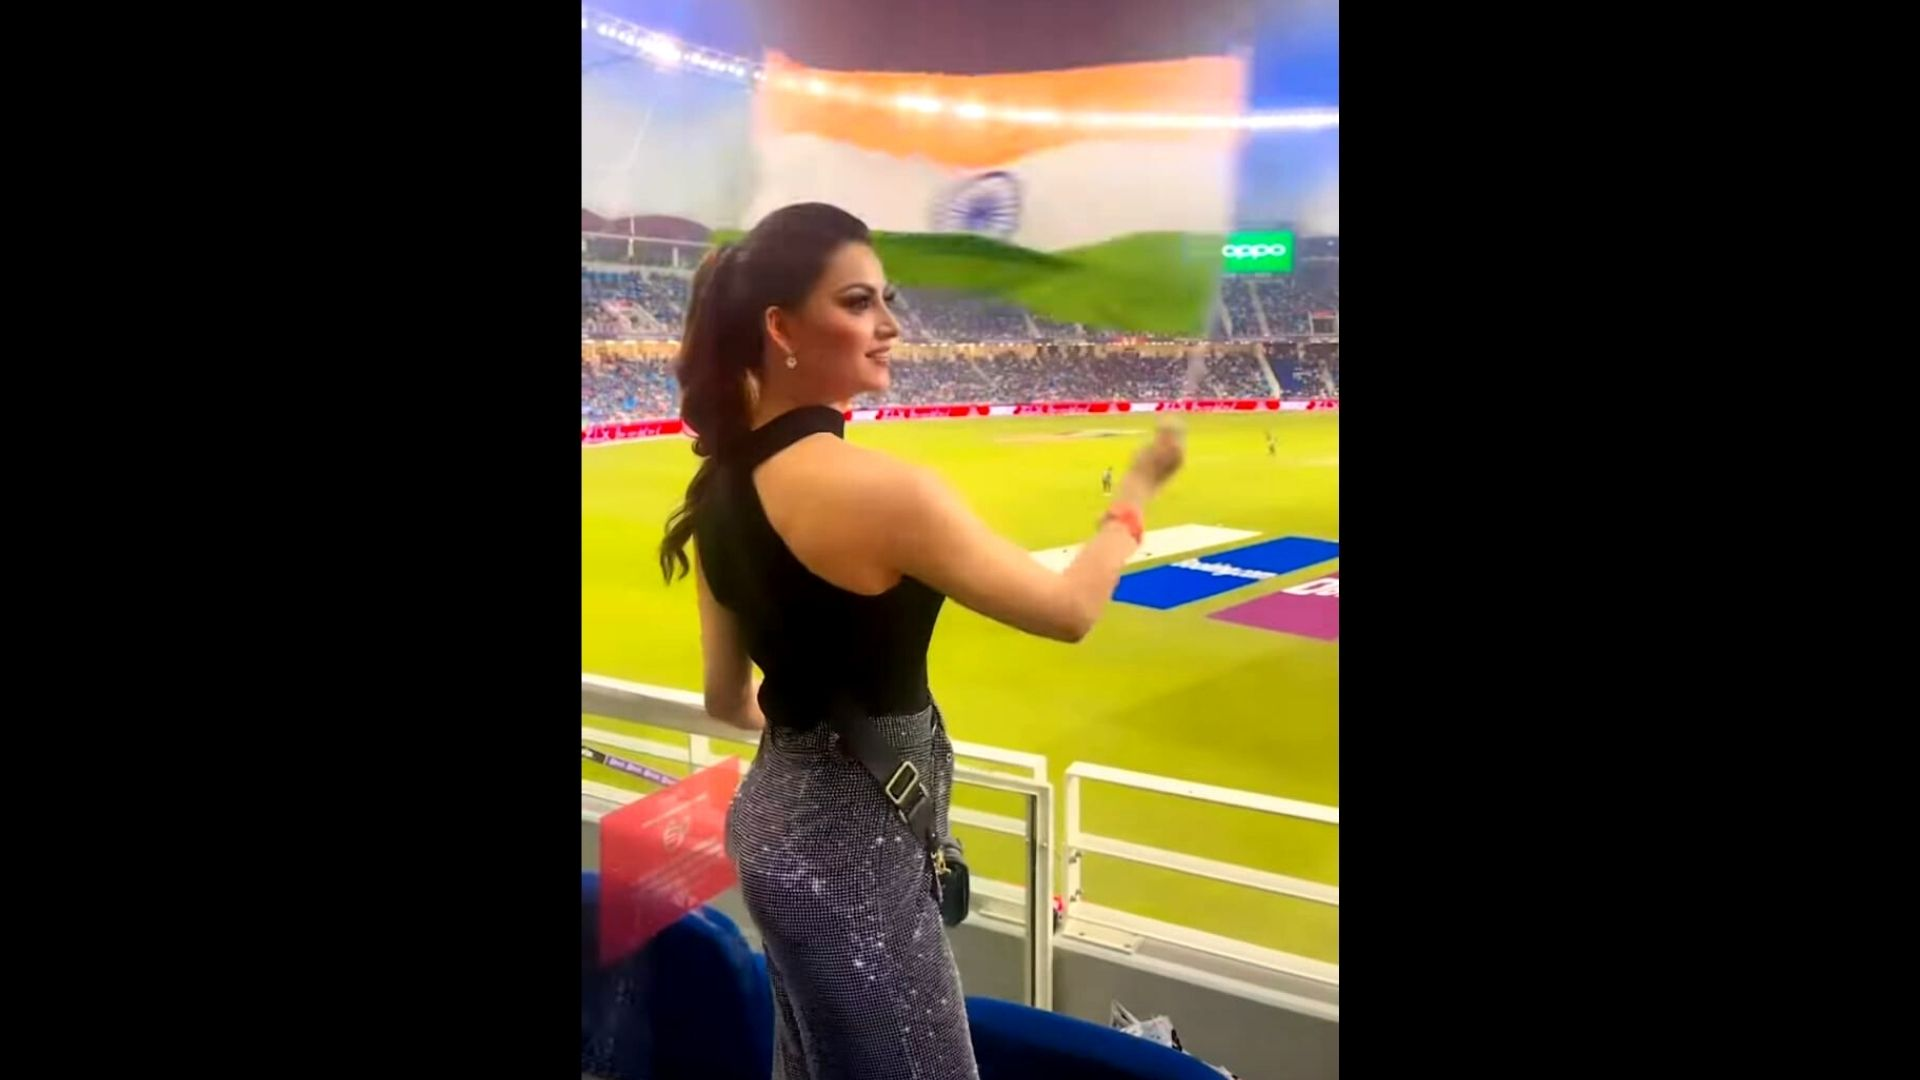 India Vs Pakistan T20 World Cup: Urvashi Rautela Waves Indian Flag With Full Enthusiasm In The Stadium As She Cheers For Team Blue